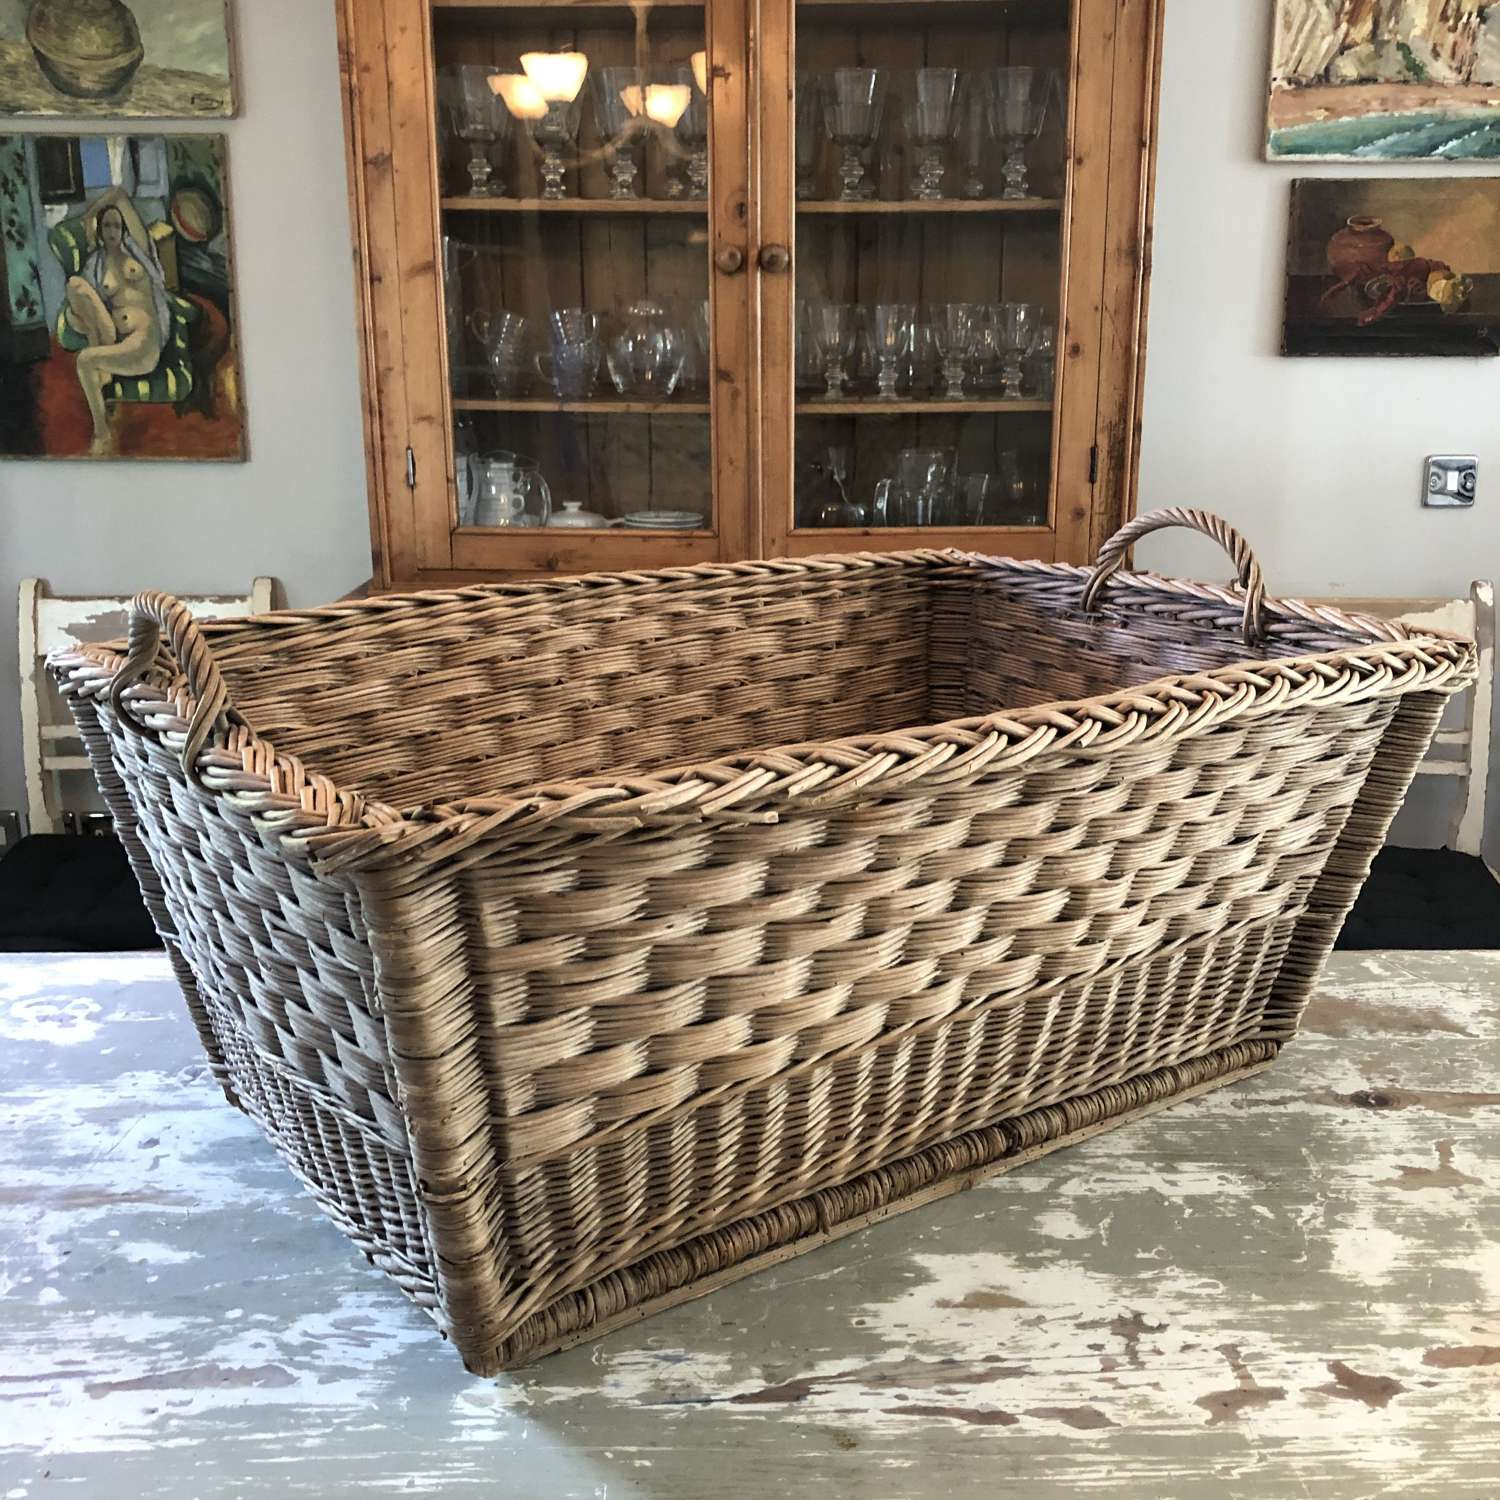 A decorative wicker log basket